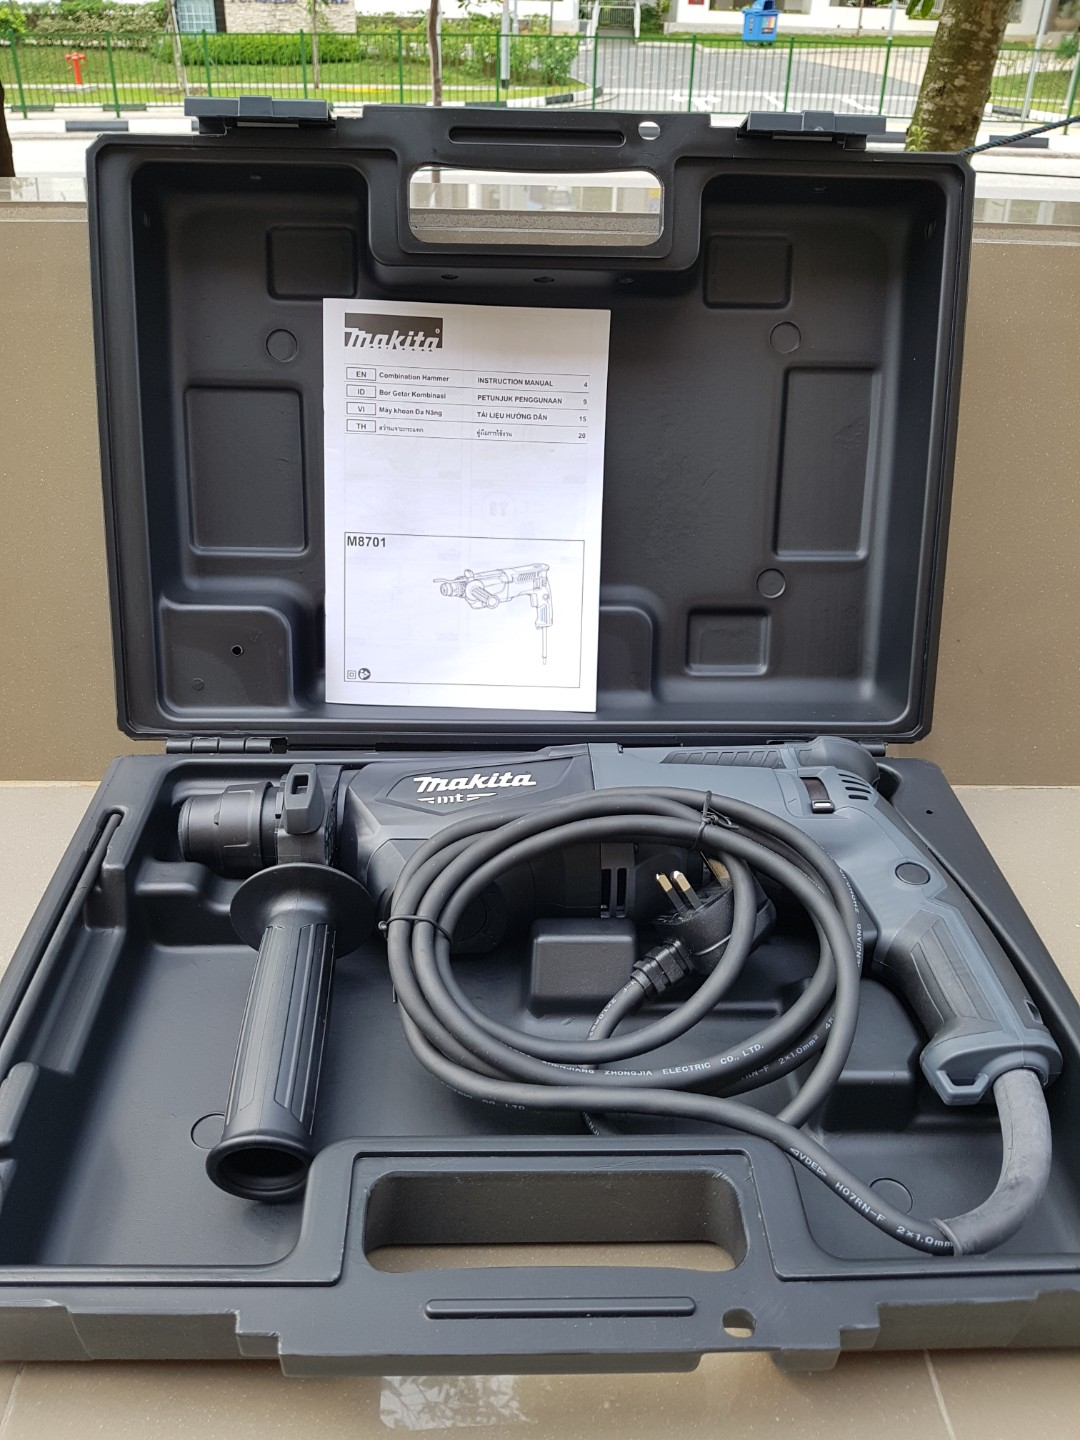 Makita M8701G, Electronics, Others on Carousell